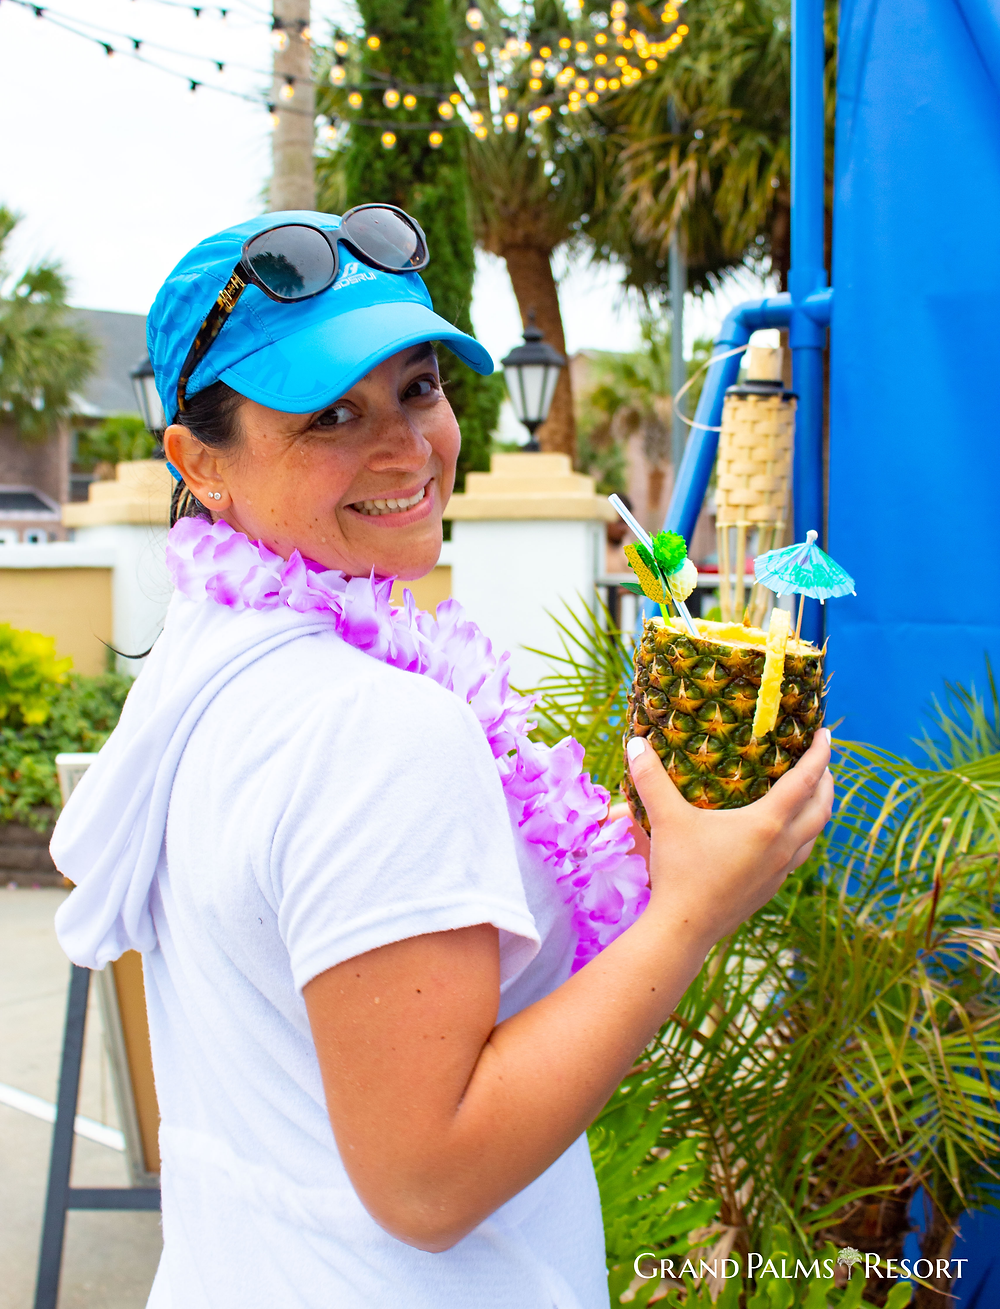 Enjoy our Polynesian Pool Party during your Myrtle Beach vacation at Grand Palms Resort formerly Plantation Resort.